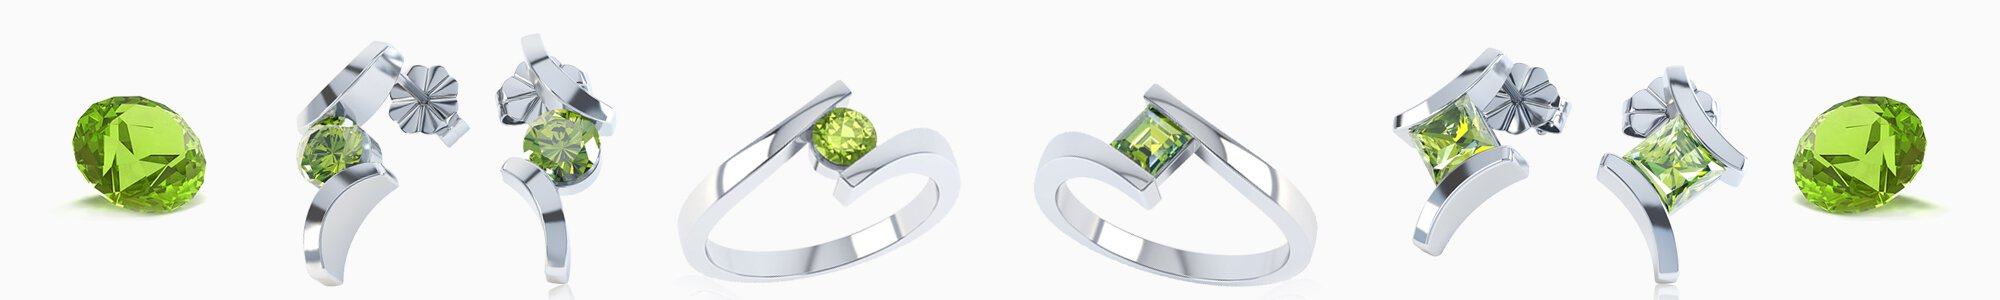 Peridot Jewellery - Wide Selection of Peridot Earrings, Pendants, Engagement Rings, Bracelets and Necklaces